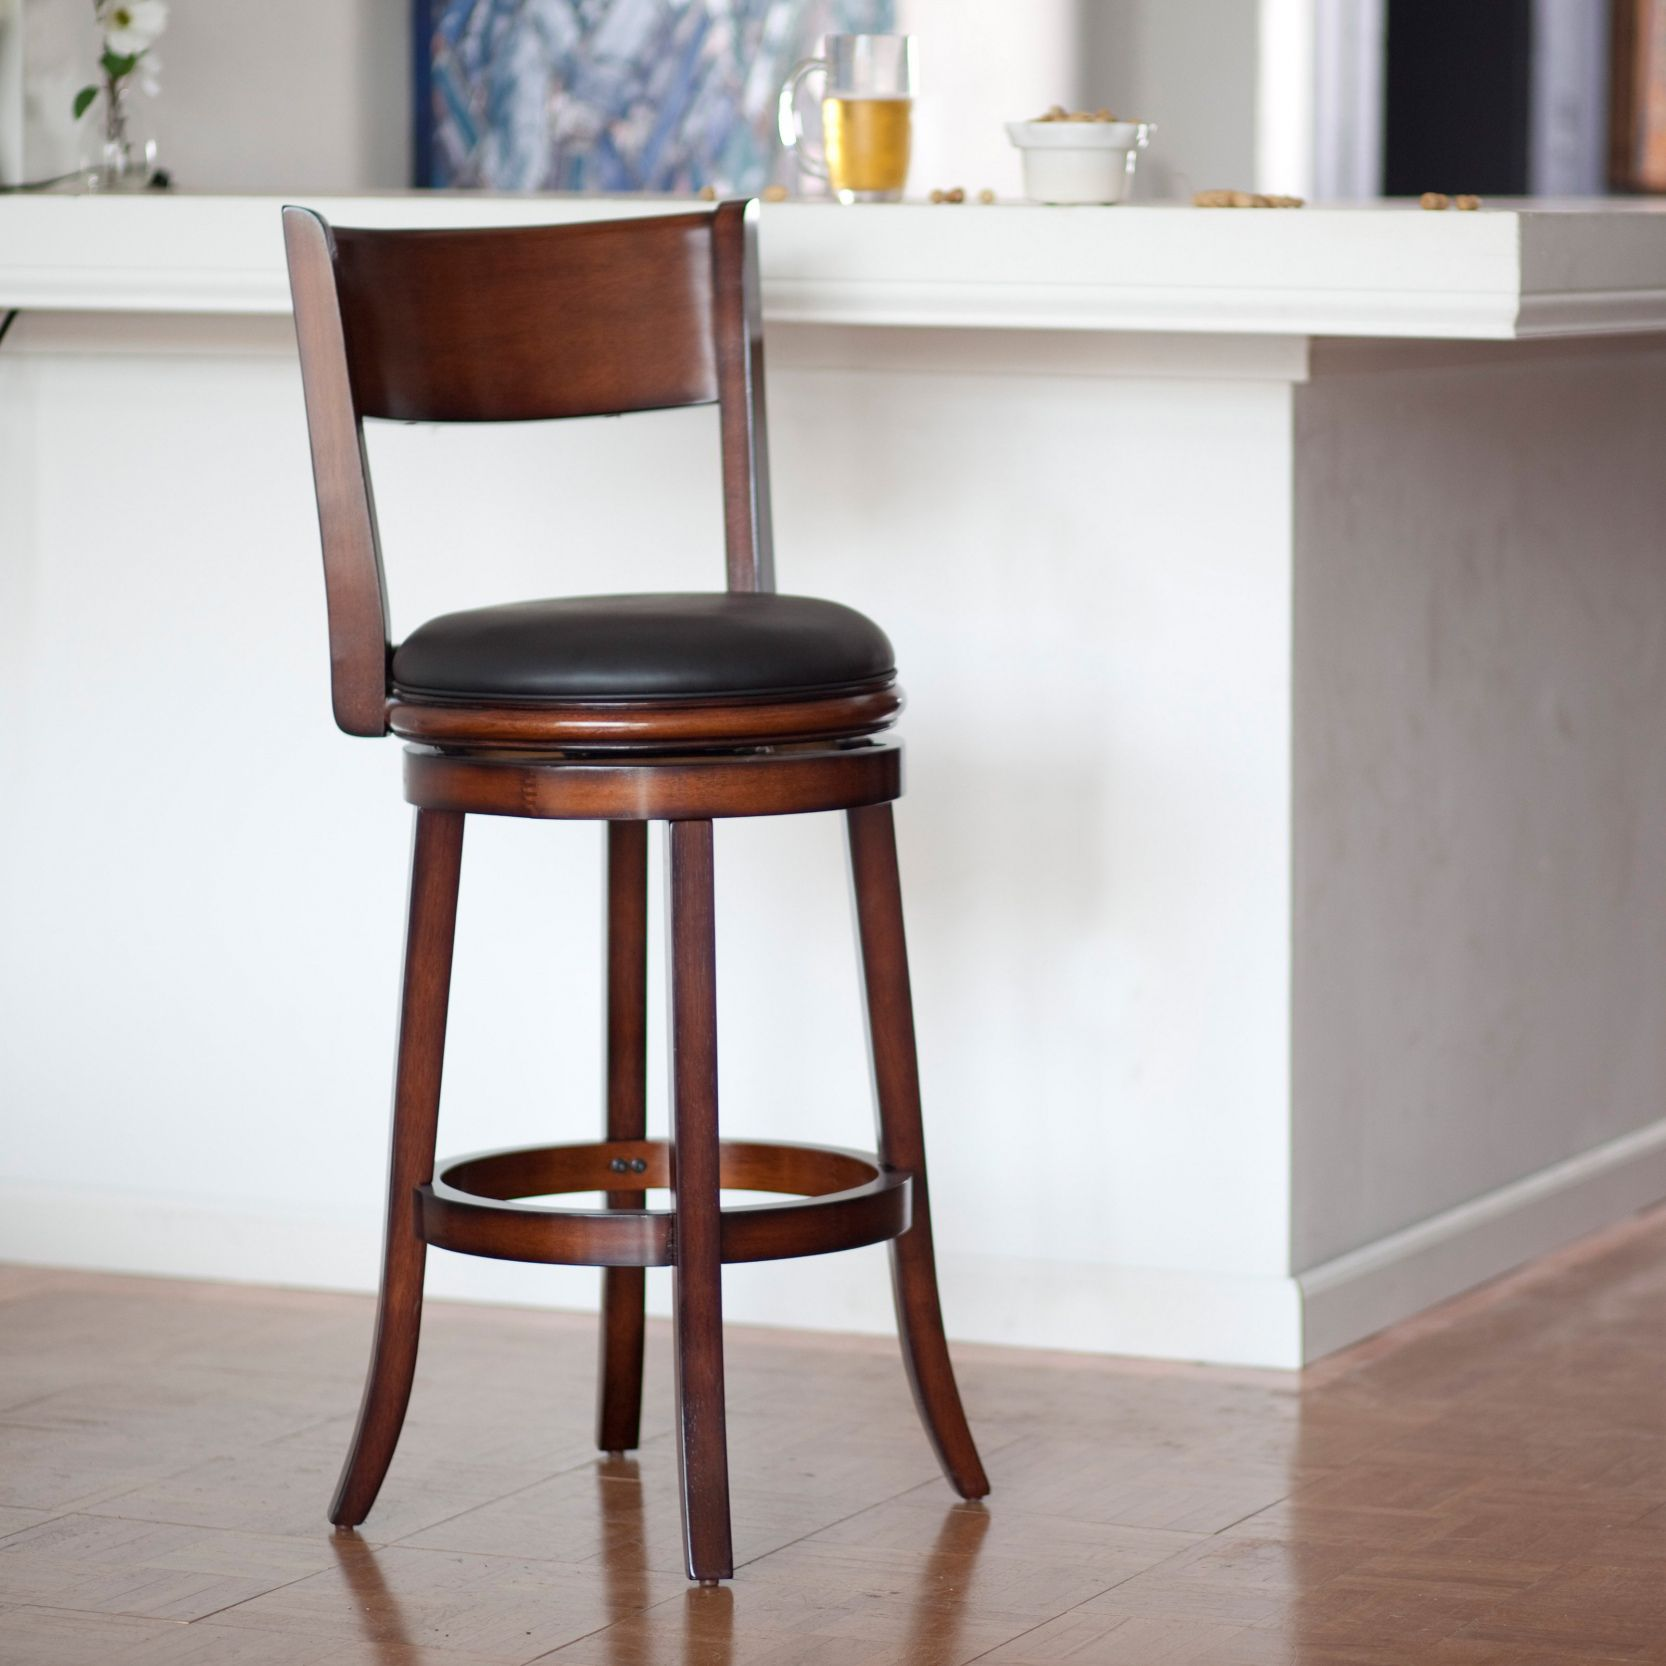 rustic contemporary furniture. 77+ Kitchen Furniture Bar Stool - Rustic Modern Check More At Http:/ Contemporary I